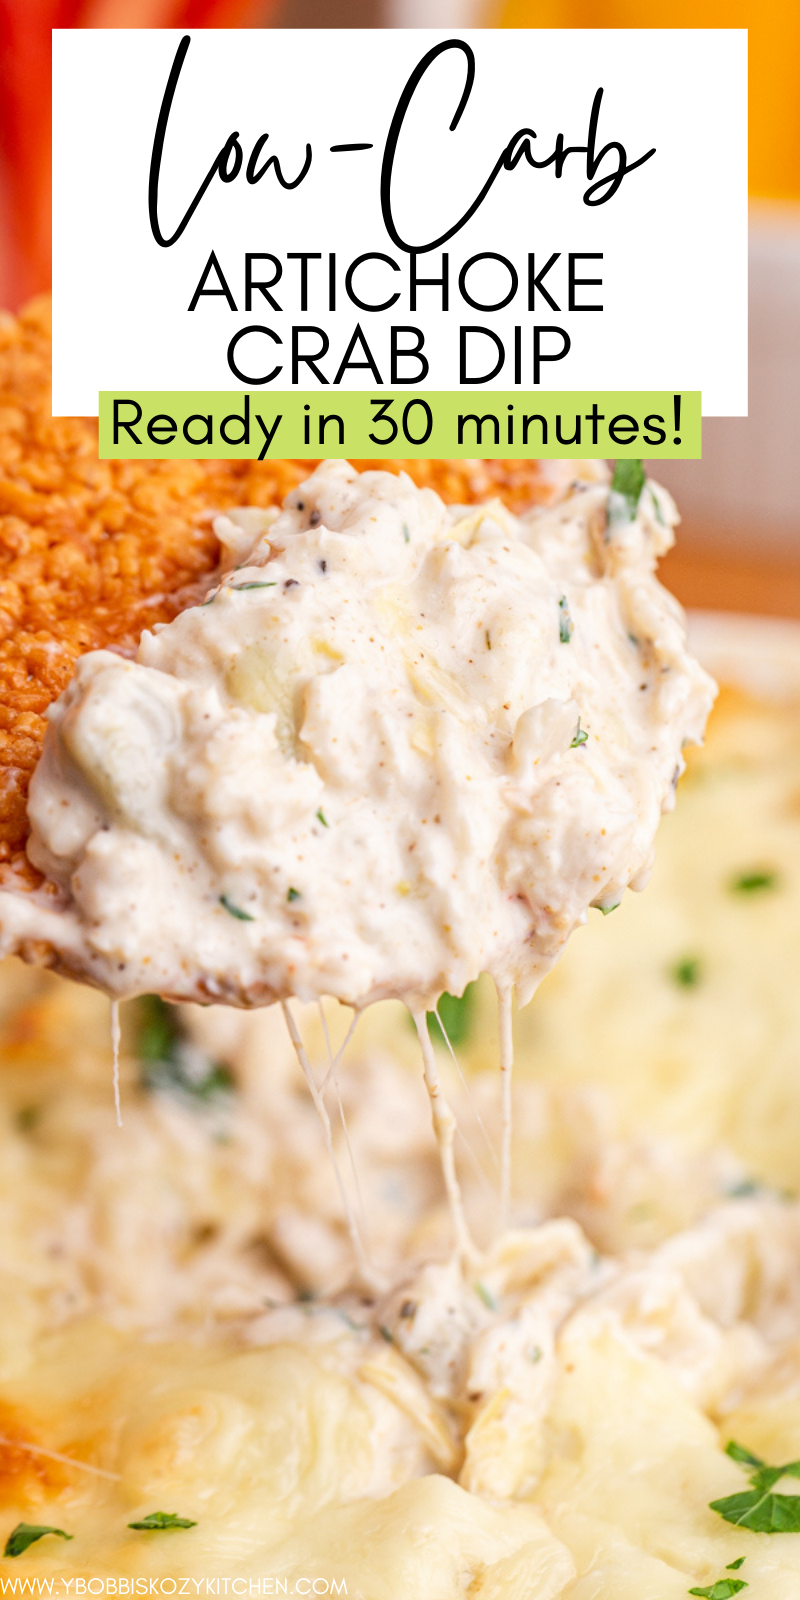 Low Carb Artichoke Crab Dip - This Low Carb Artichoke Crab Dip recipe takes just 10 minutes to put together and then is popped into the oven. The result is a crowd-pleasing cheesy dip that is baked to perfection! #keto #glutenfree #lowcarb #crab #artichoke #dip #cheese #appetizer #easy #recipe